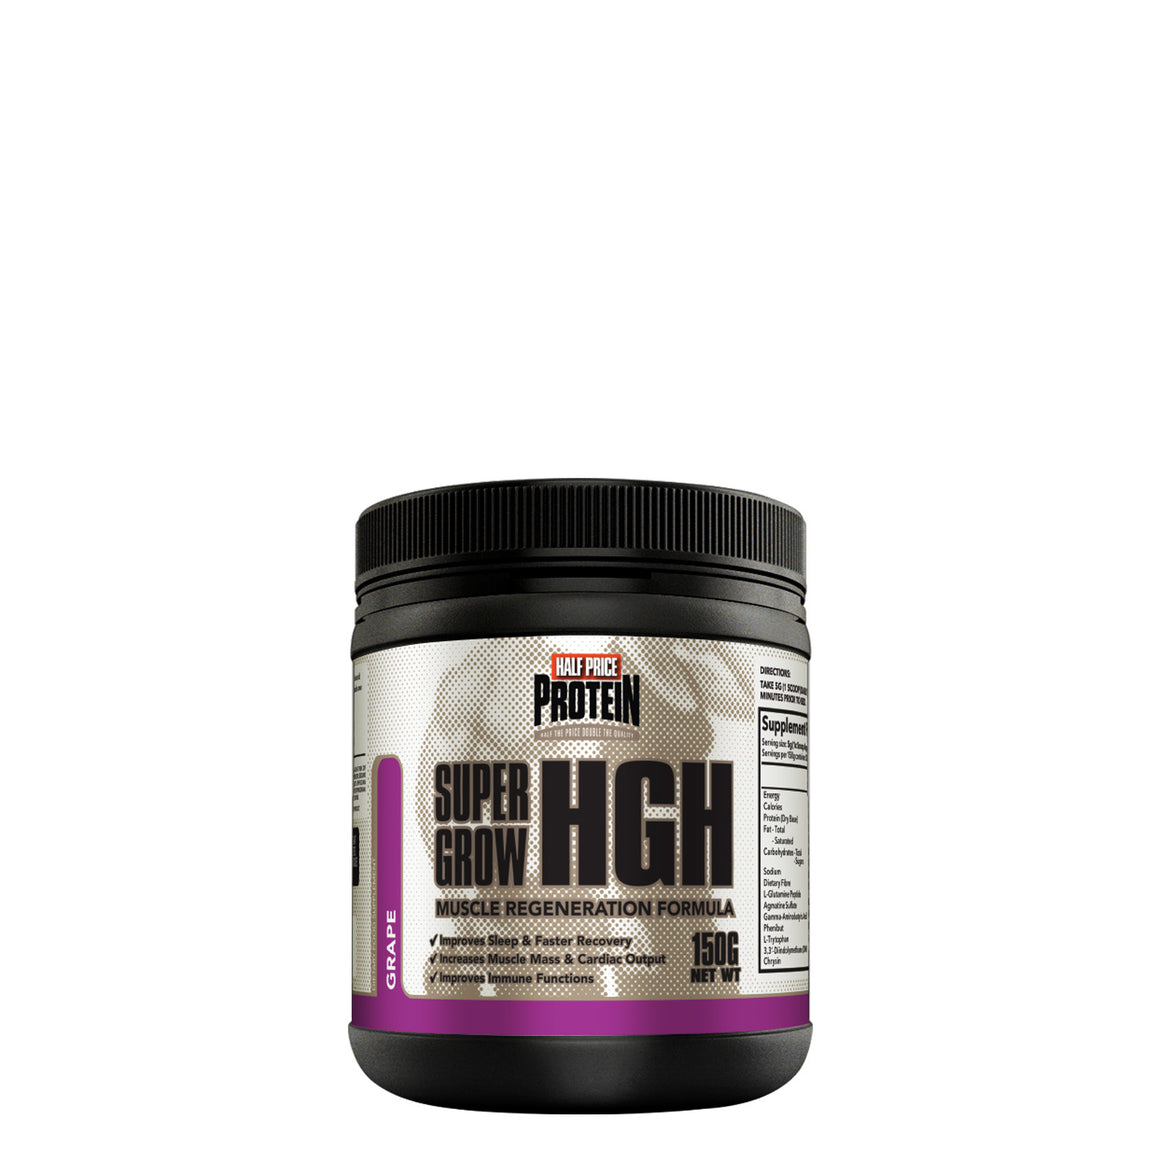 Half Price Protein - Super Grow HGH 150g